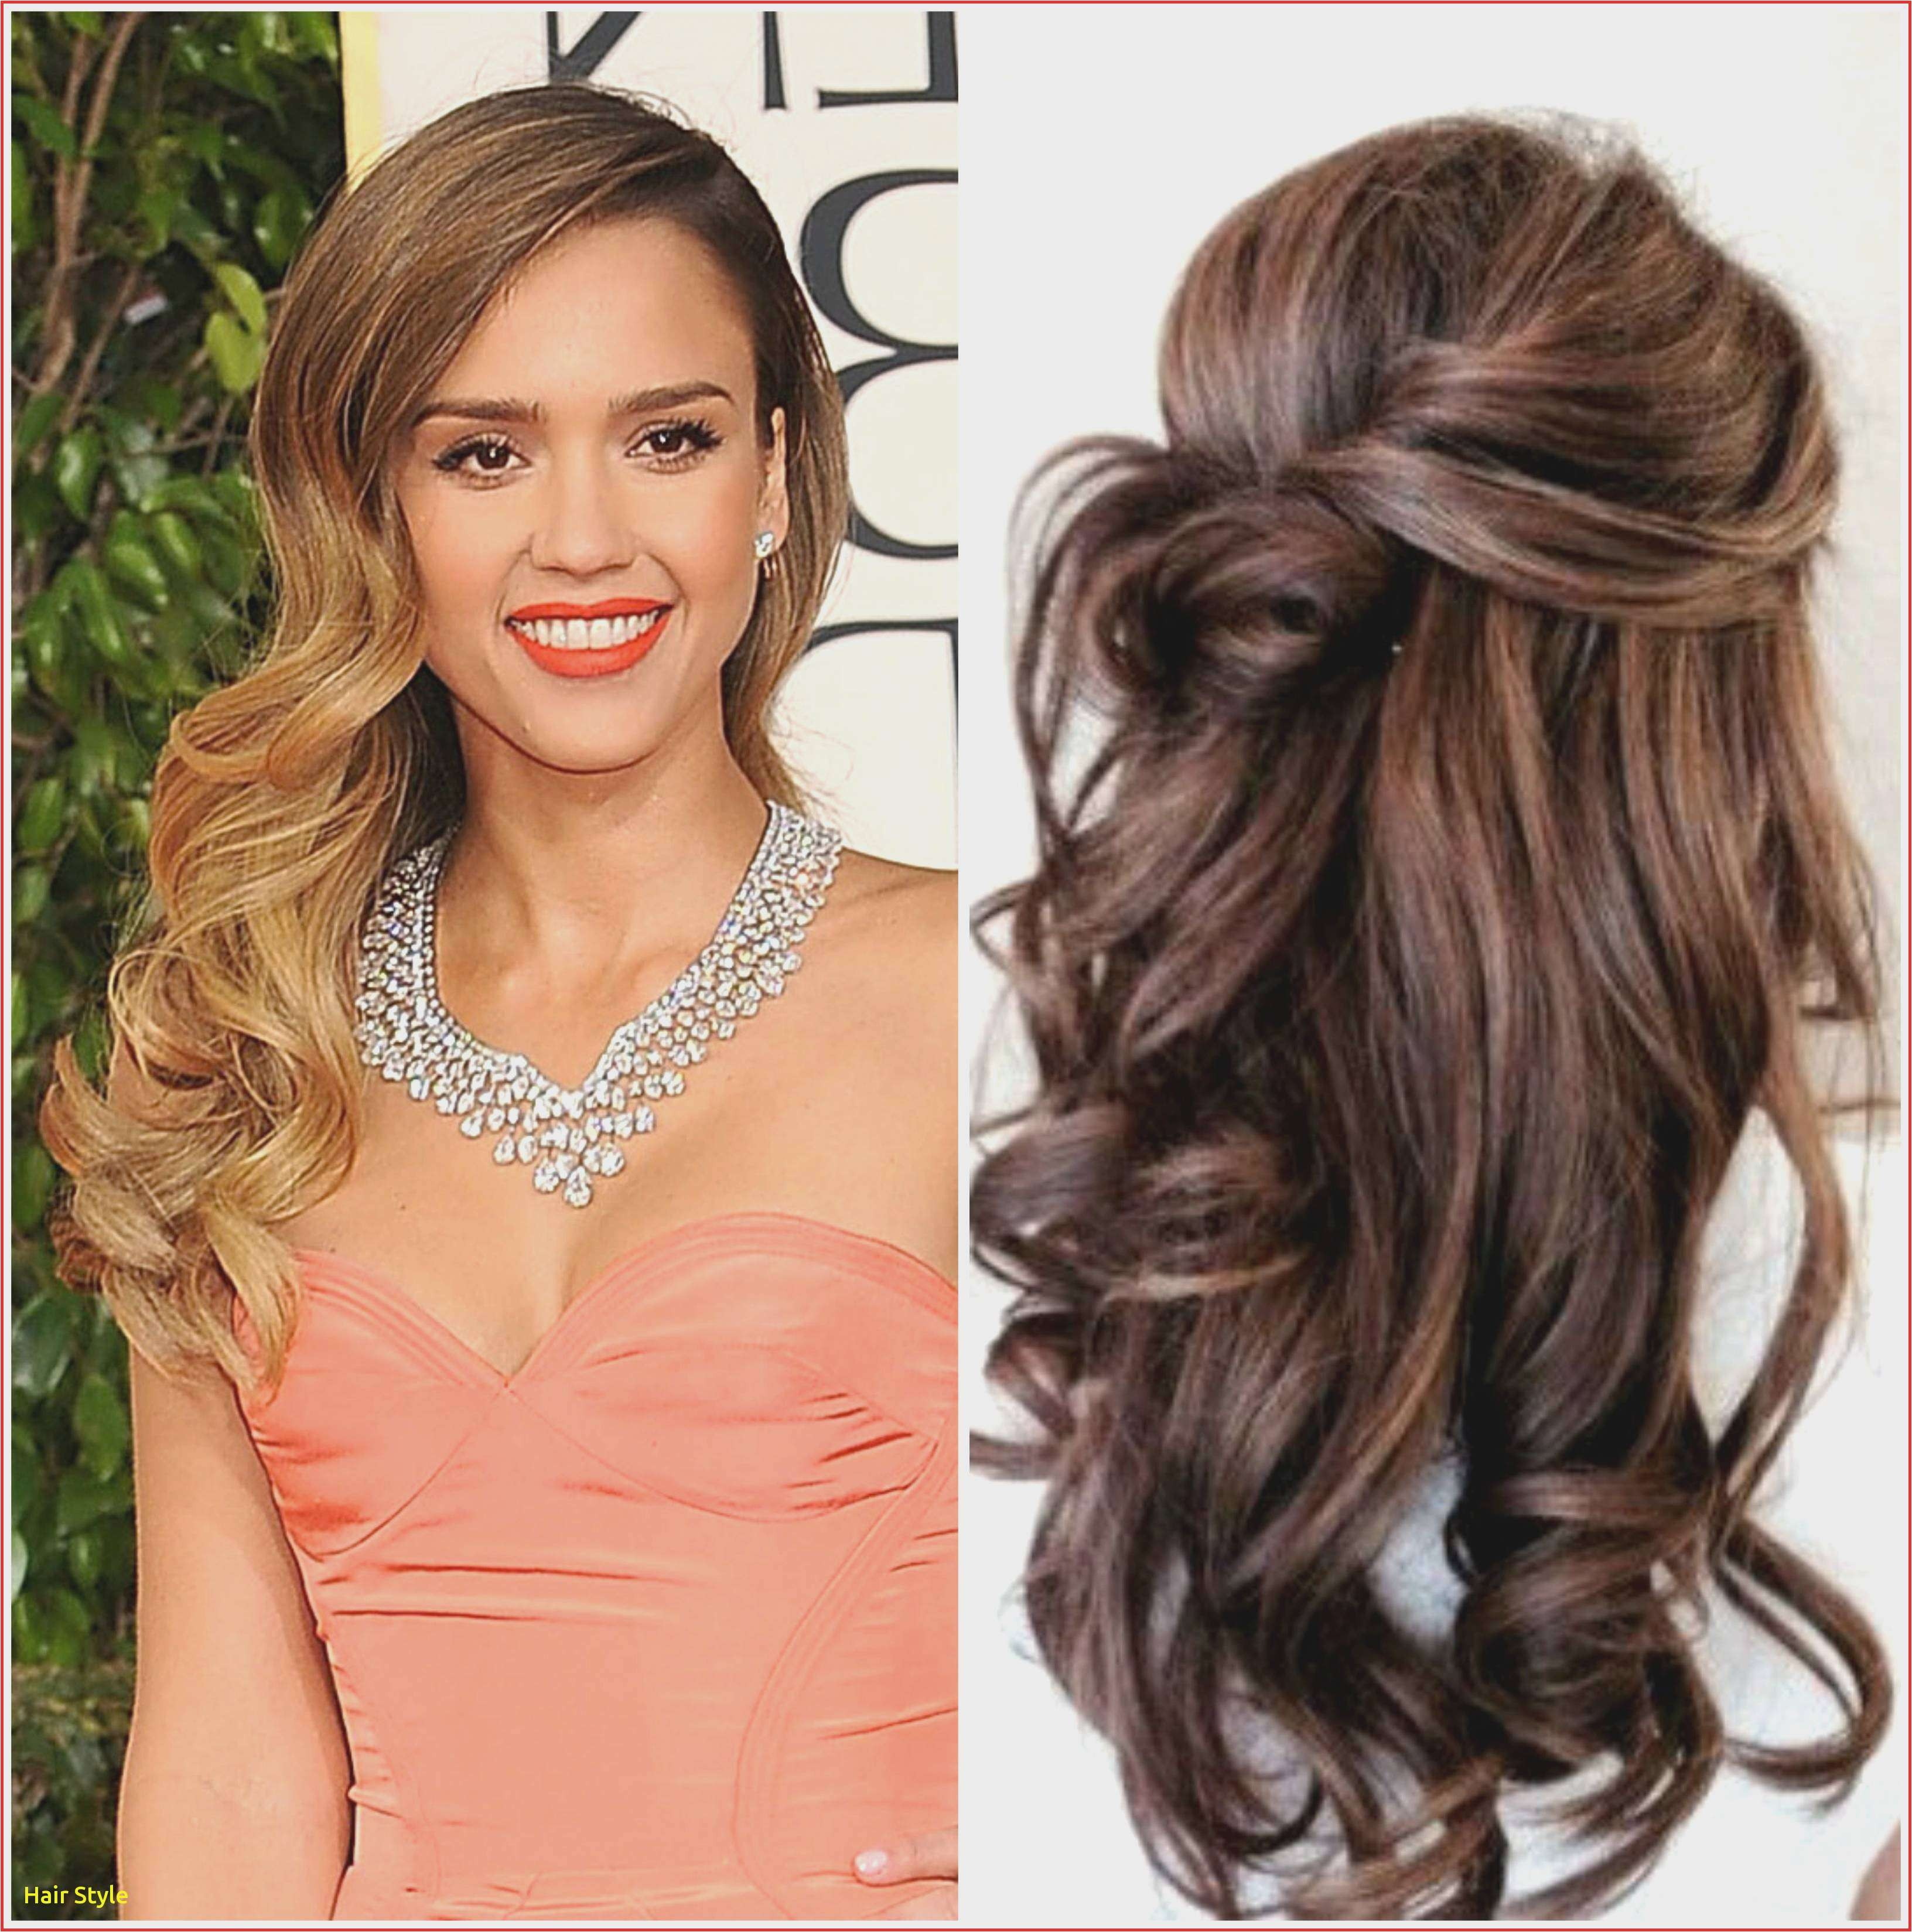 hairstyle for girls new medium hairstyles for girls hairstyle for medium hair 0d